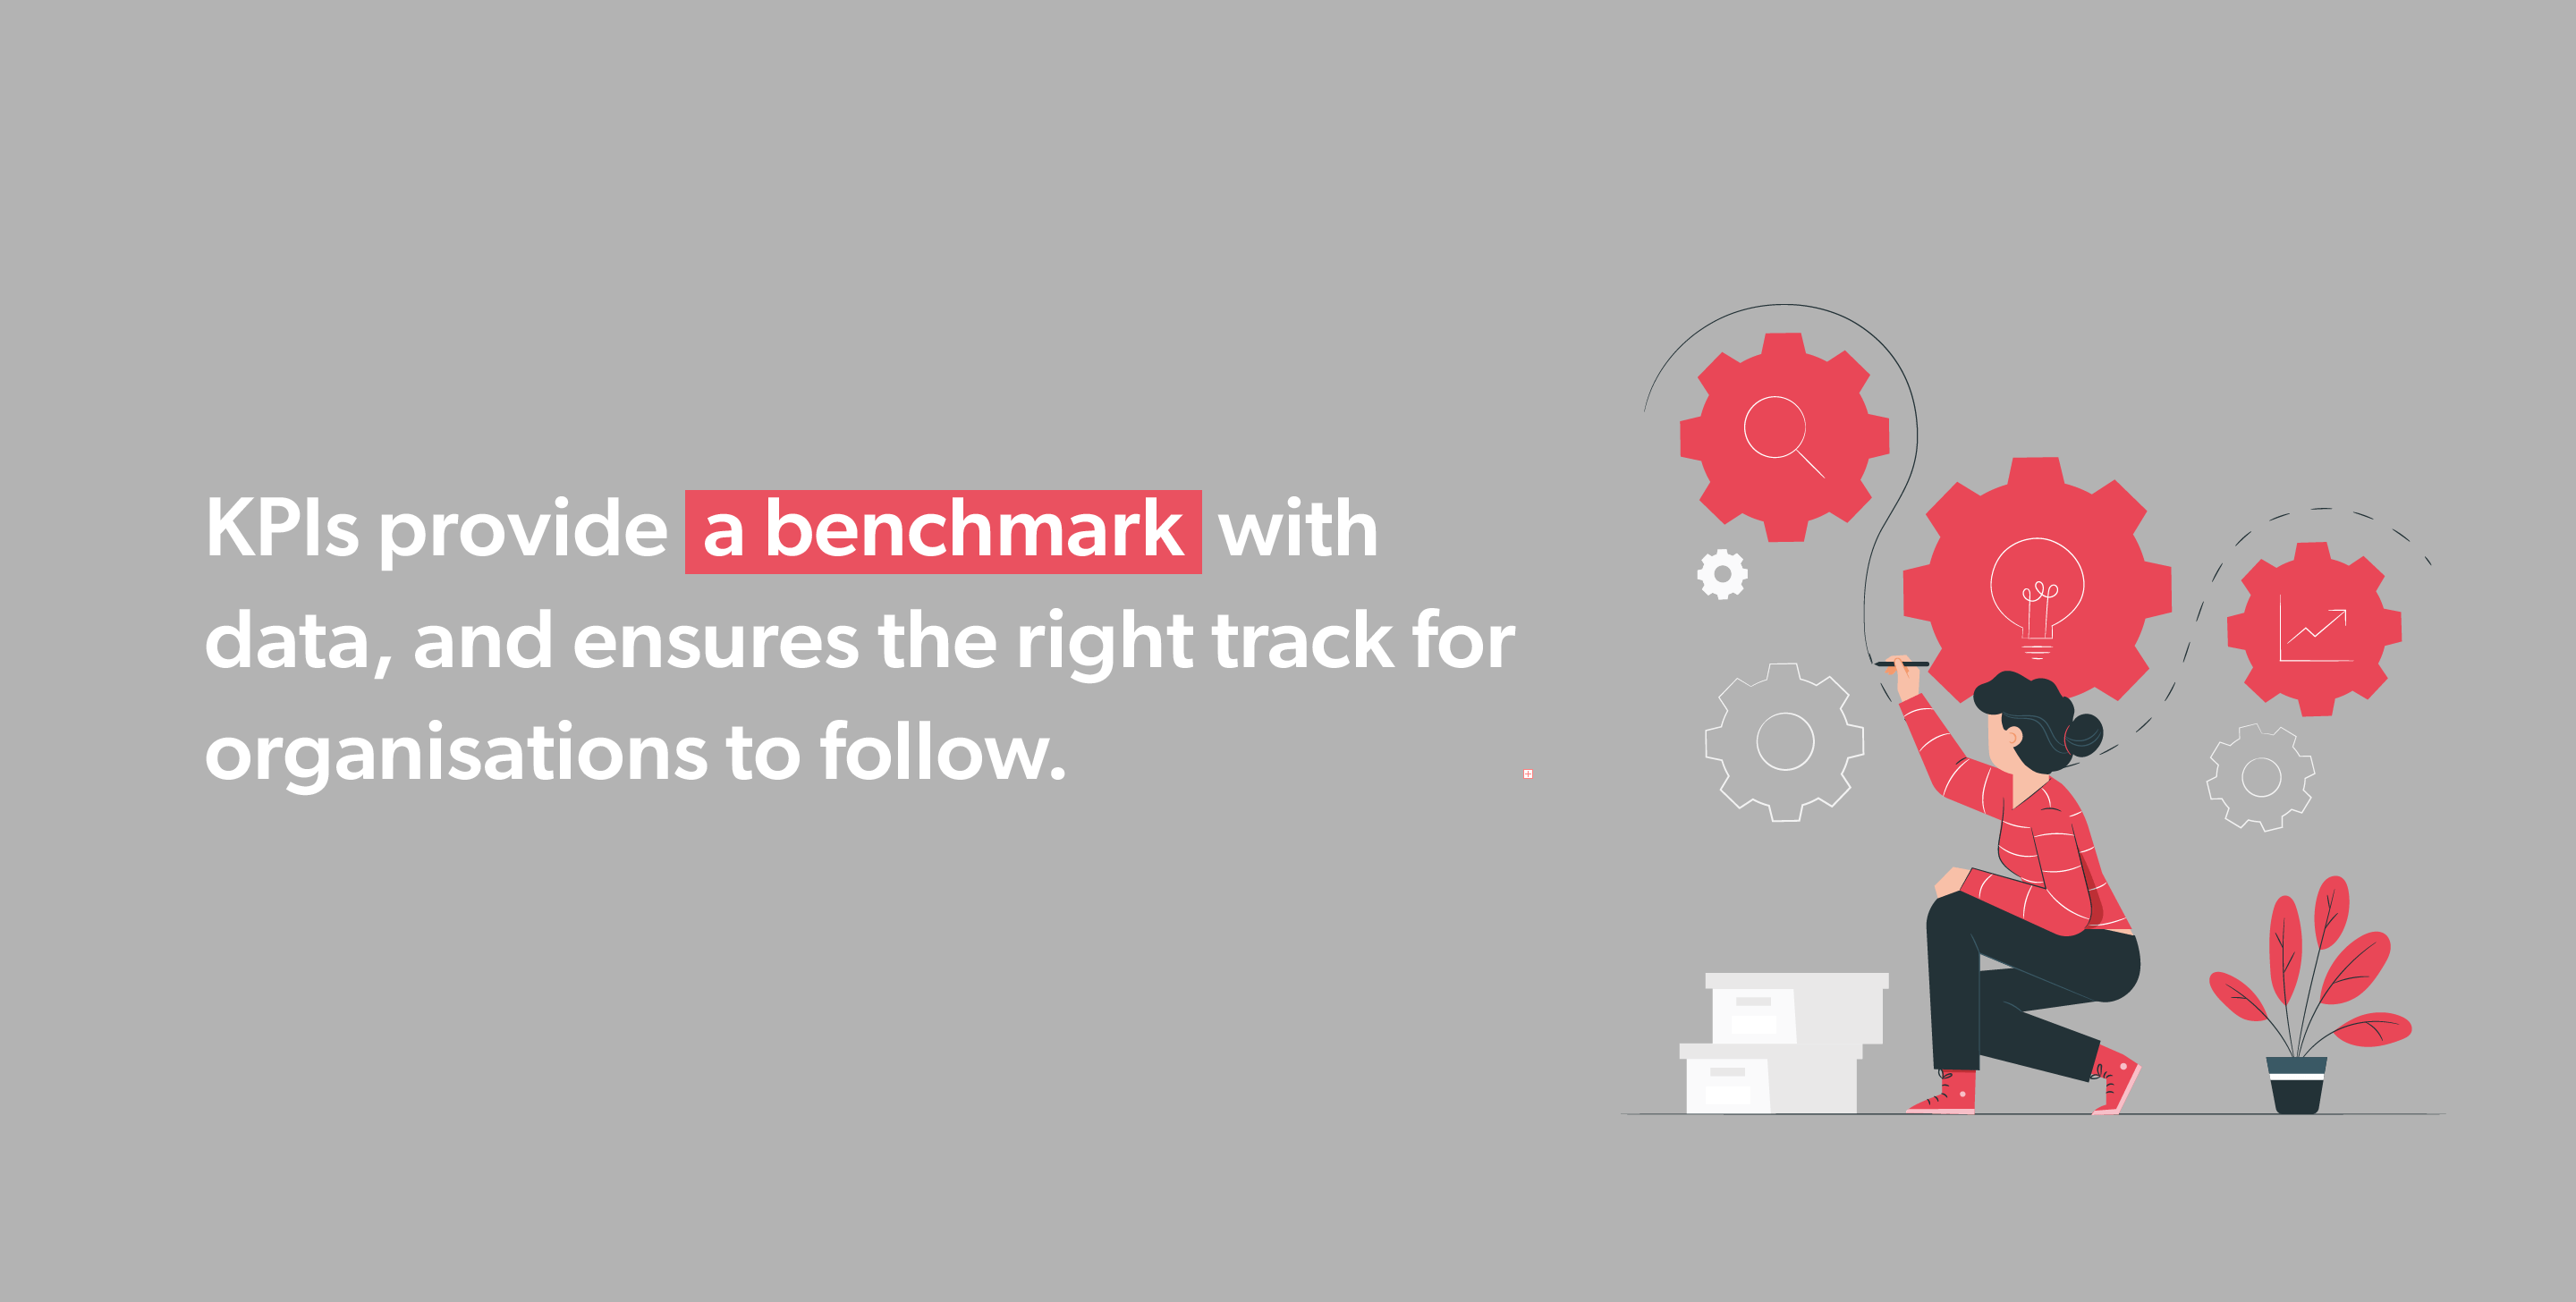 KPIs provide a benchmark with data, and ensures the right track for organisations to follow